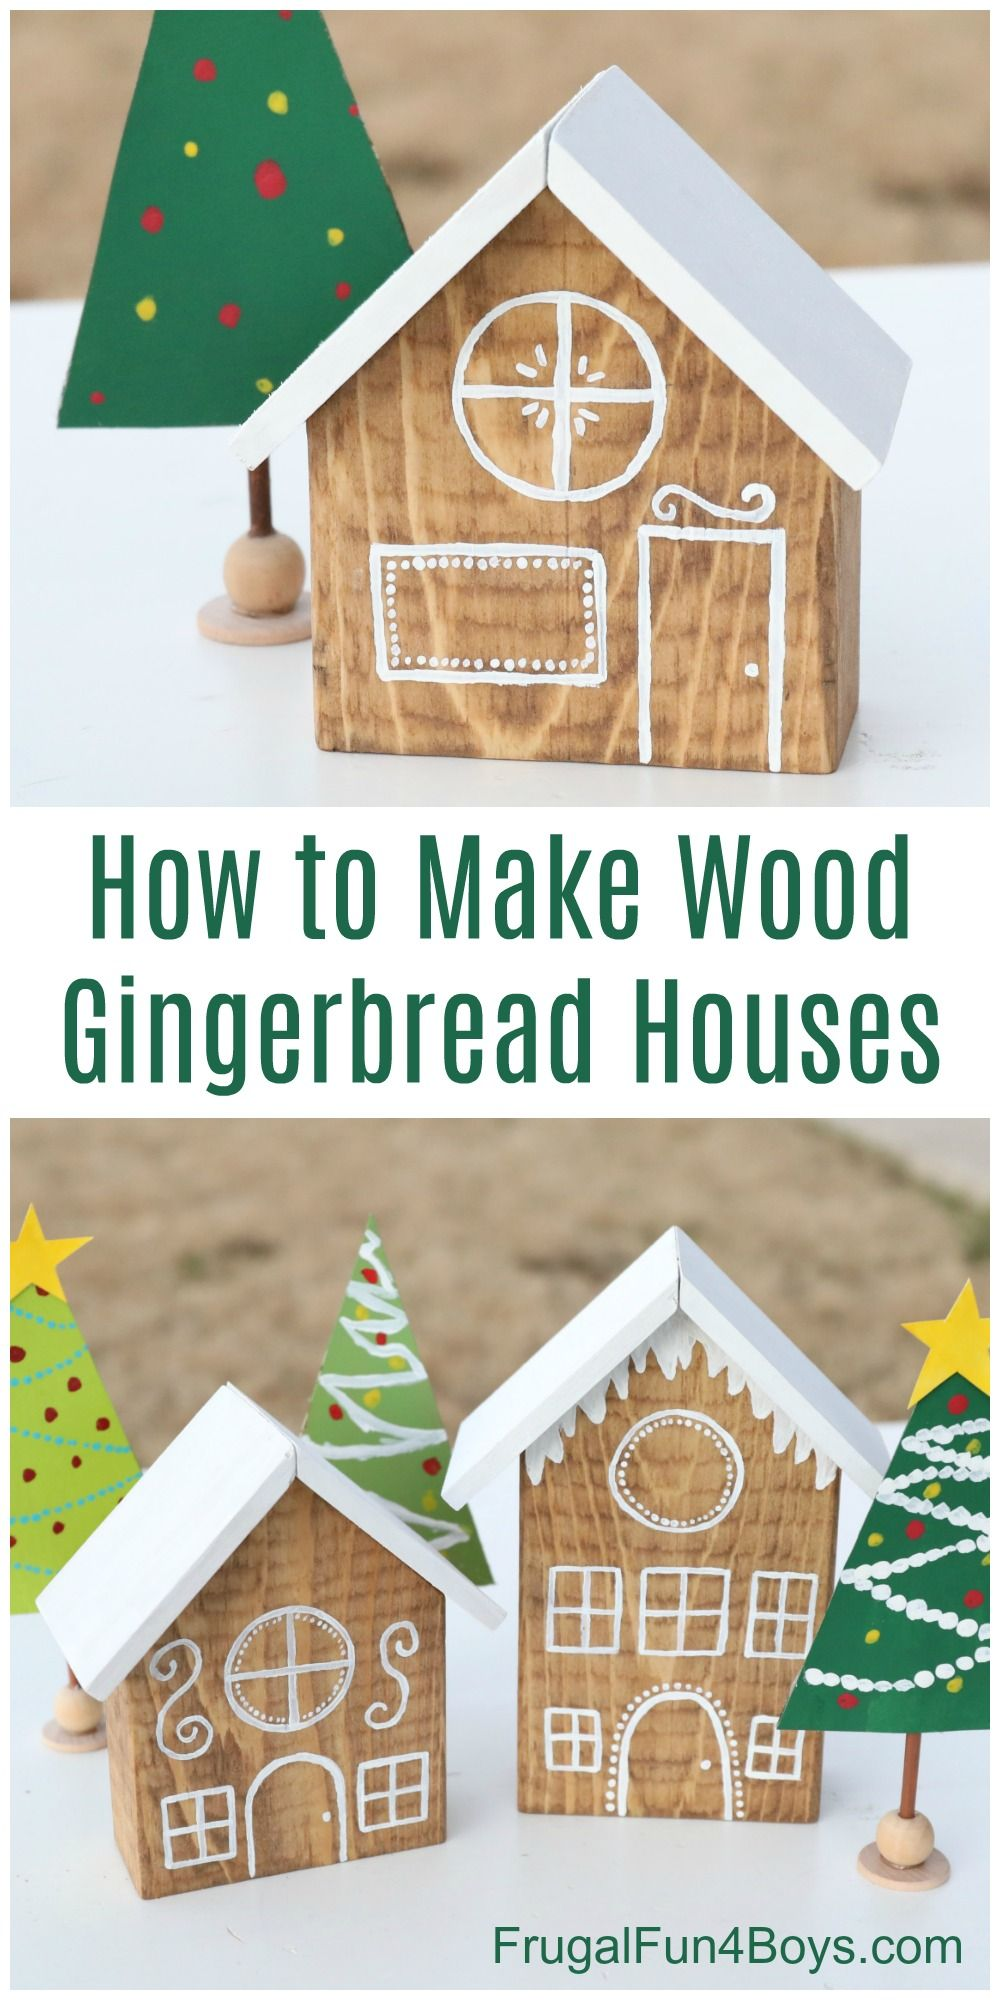 How To Make Adorable Wooden Gingerbread Houses Gingerbread House Gingerbread House Decorations Christmas Crafts